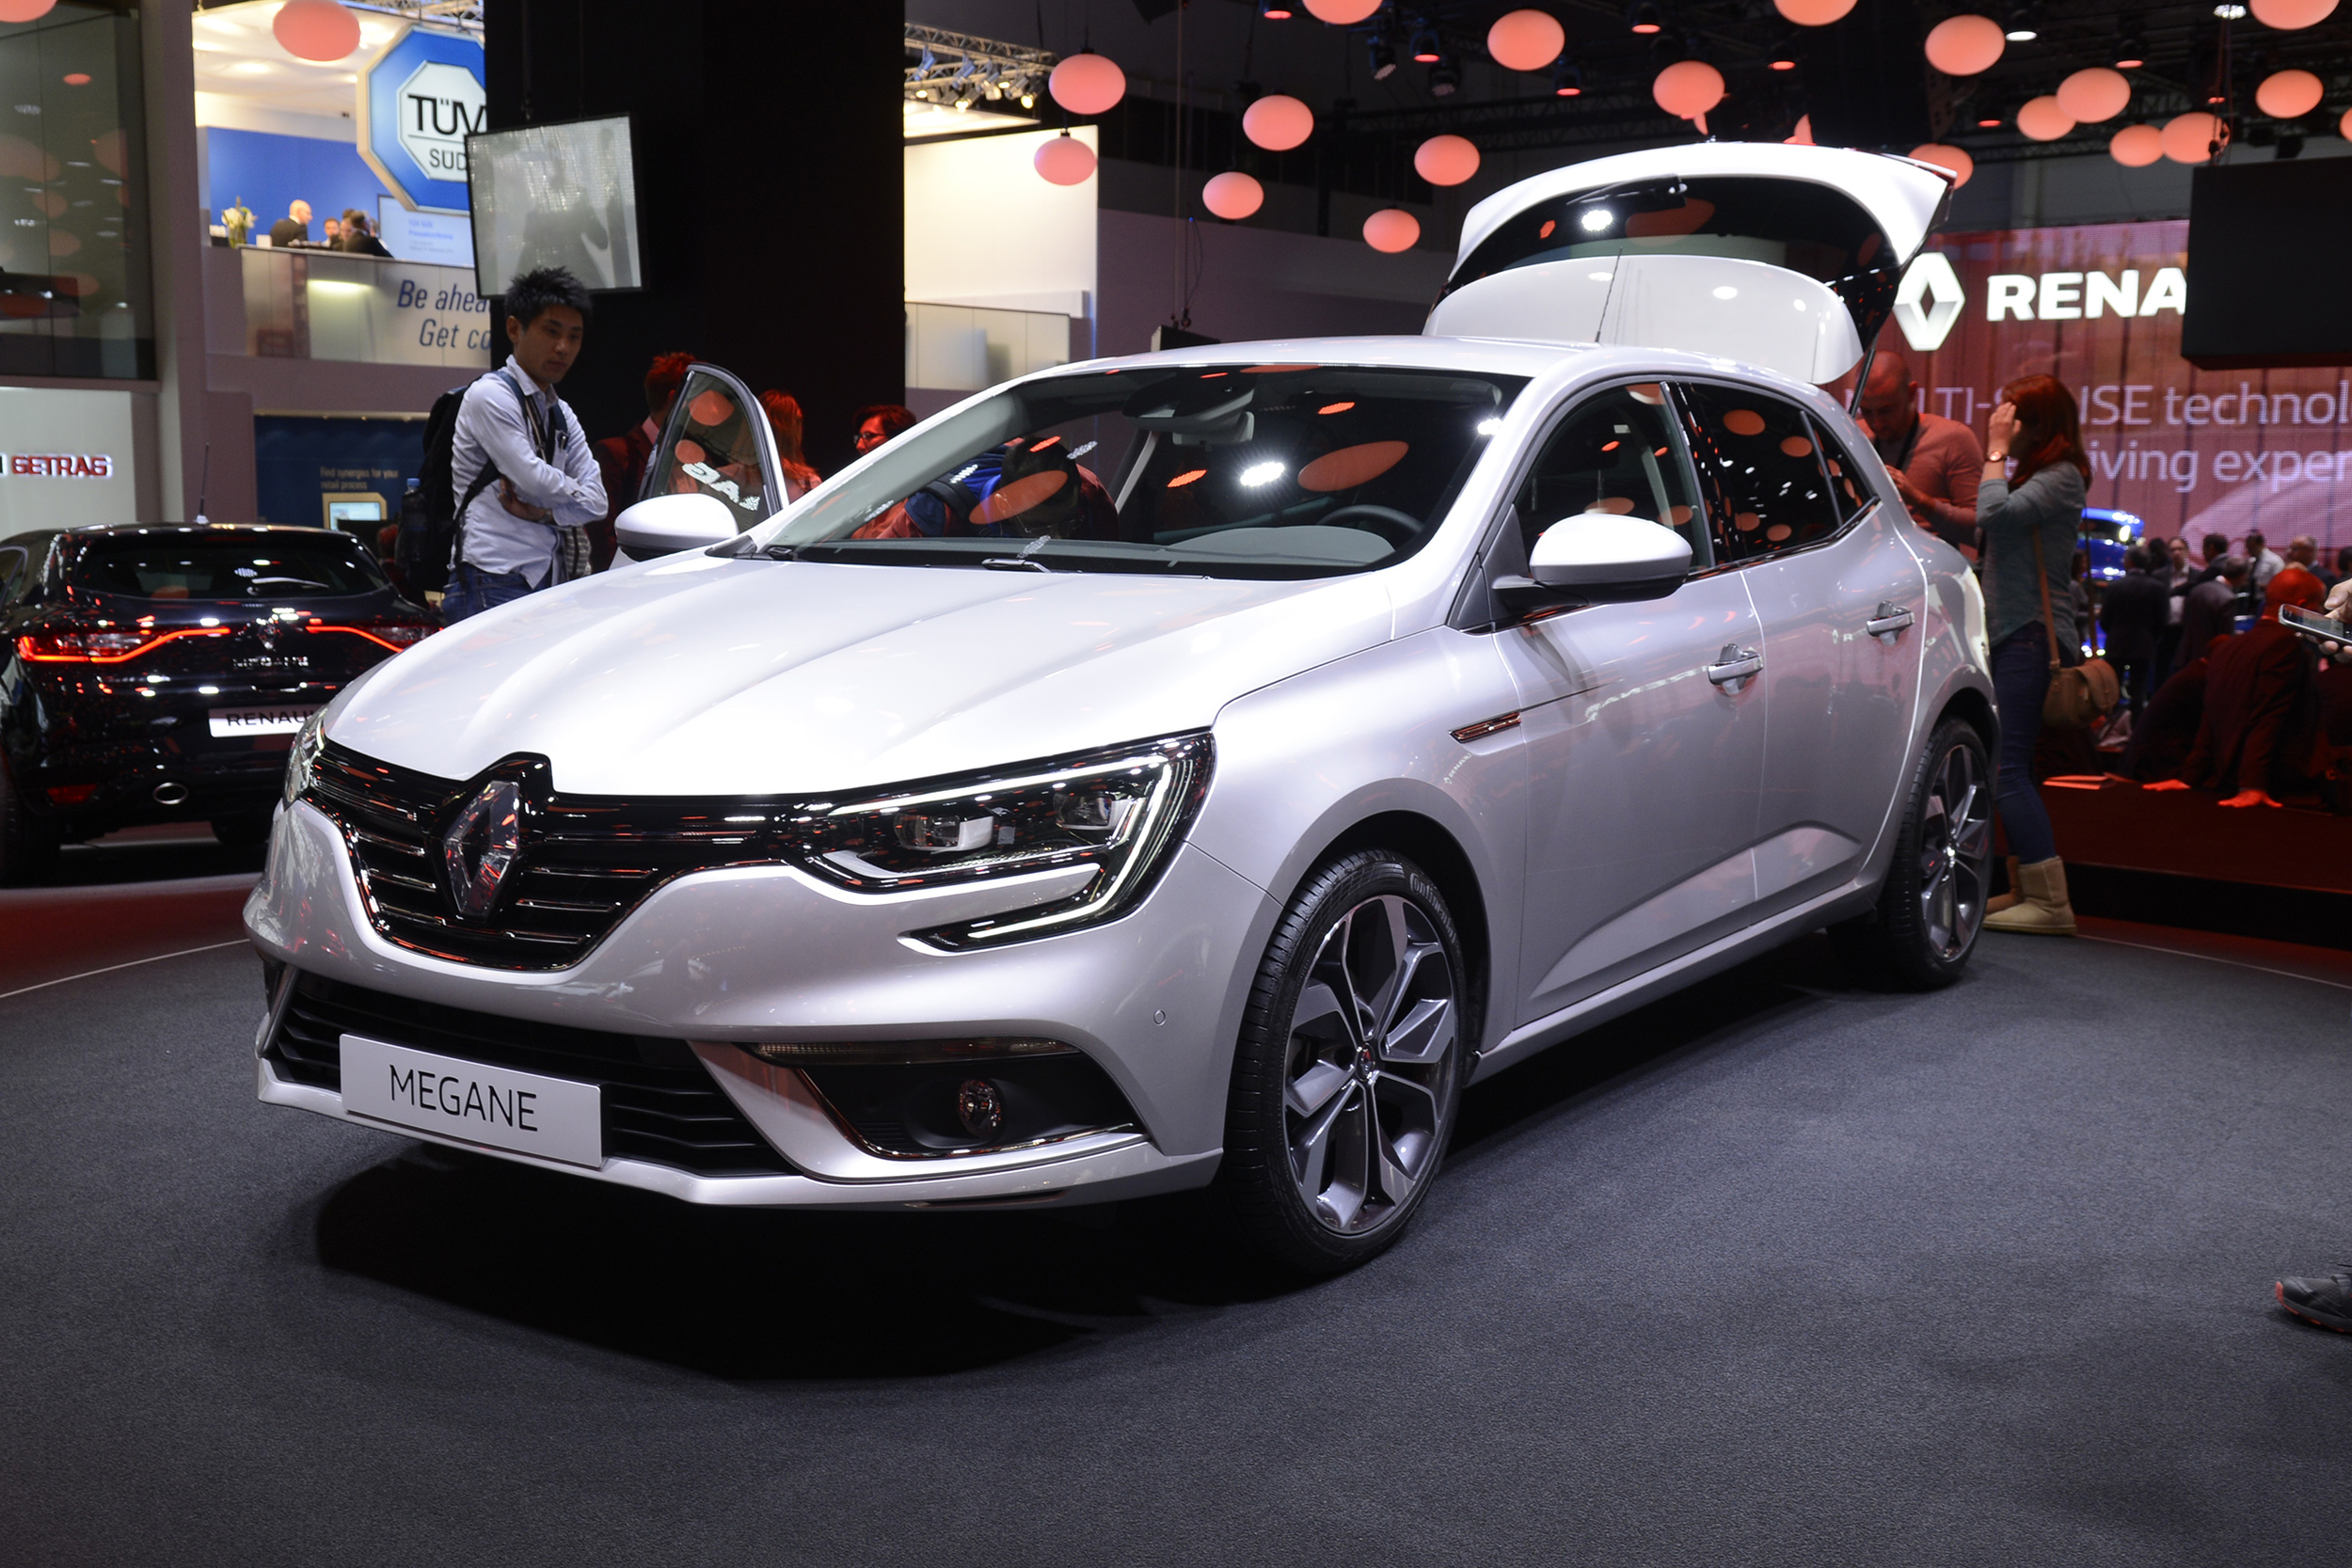 Renault has shown its all-new Megane in Frankfurt